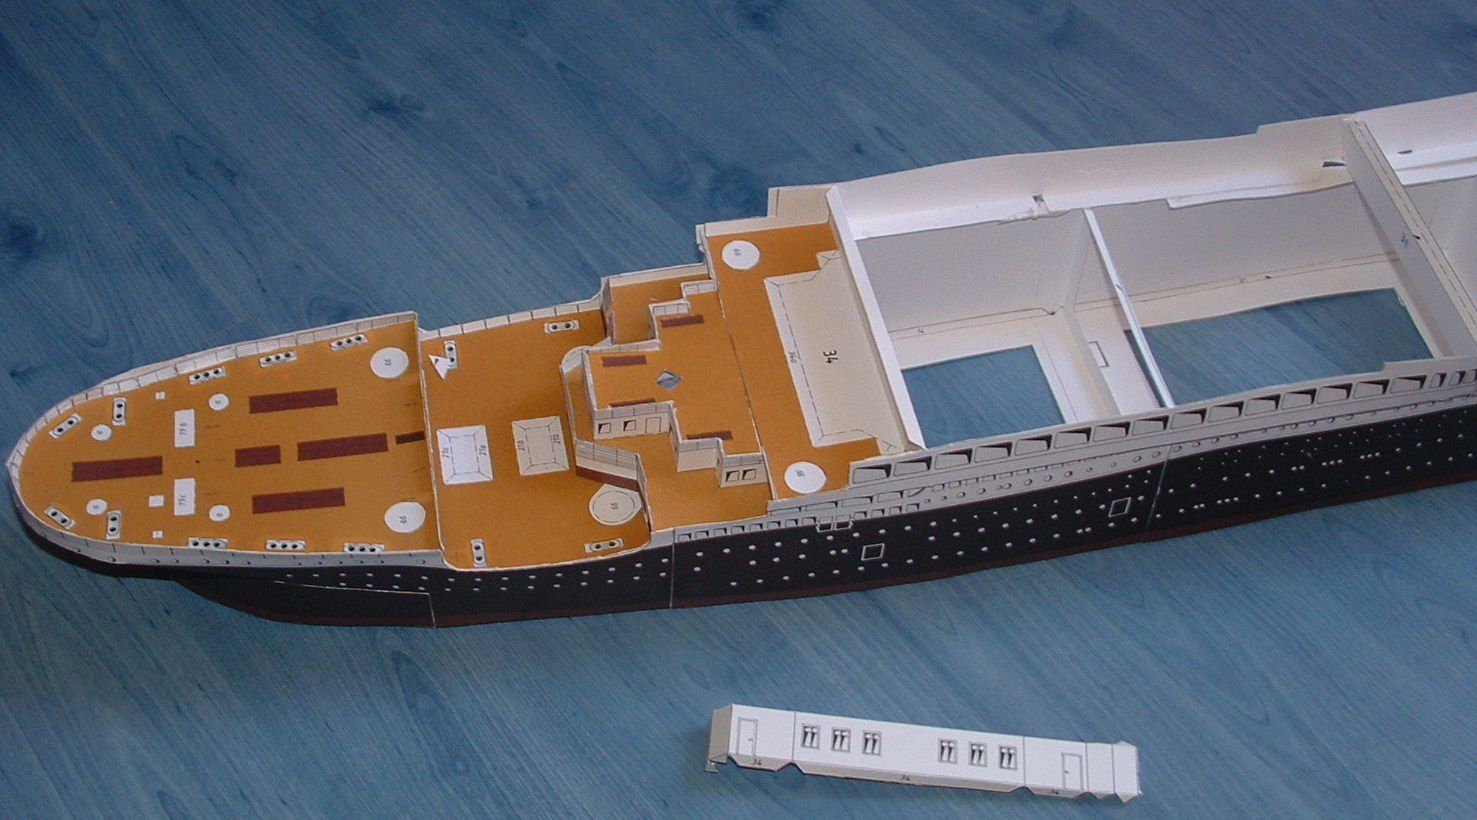 maquette en carton le blog de cyril sur le titanic. Black Bedroom Furniture Sets. Home Design Ideas